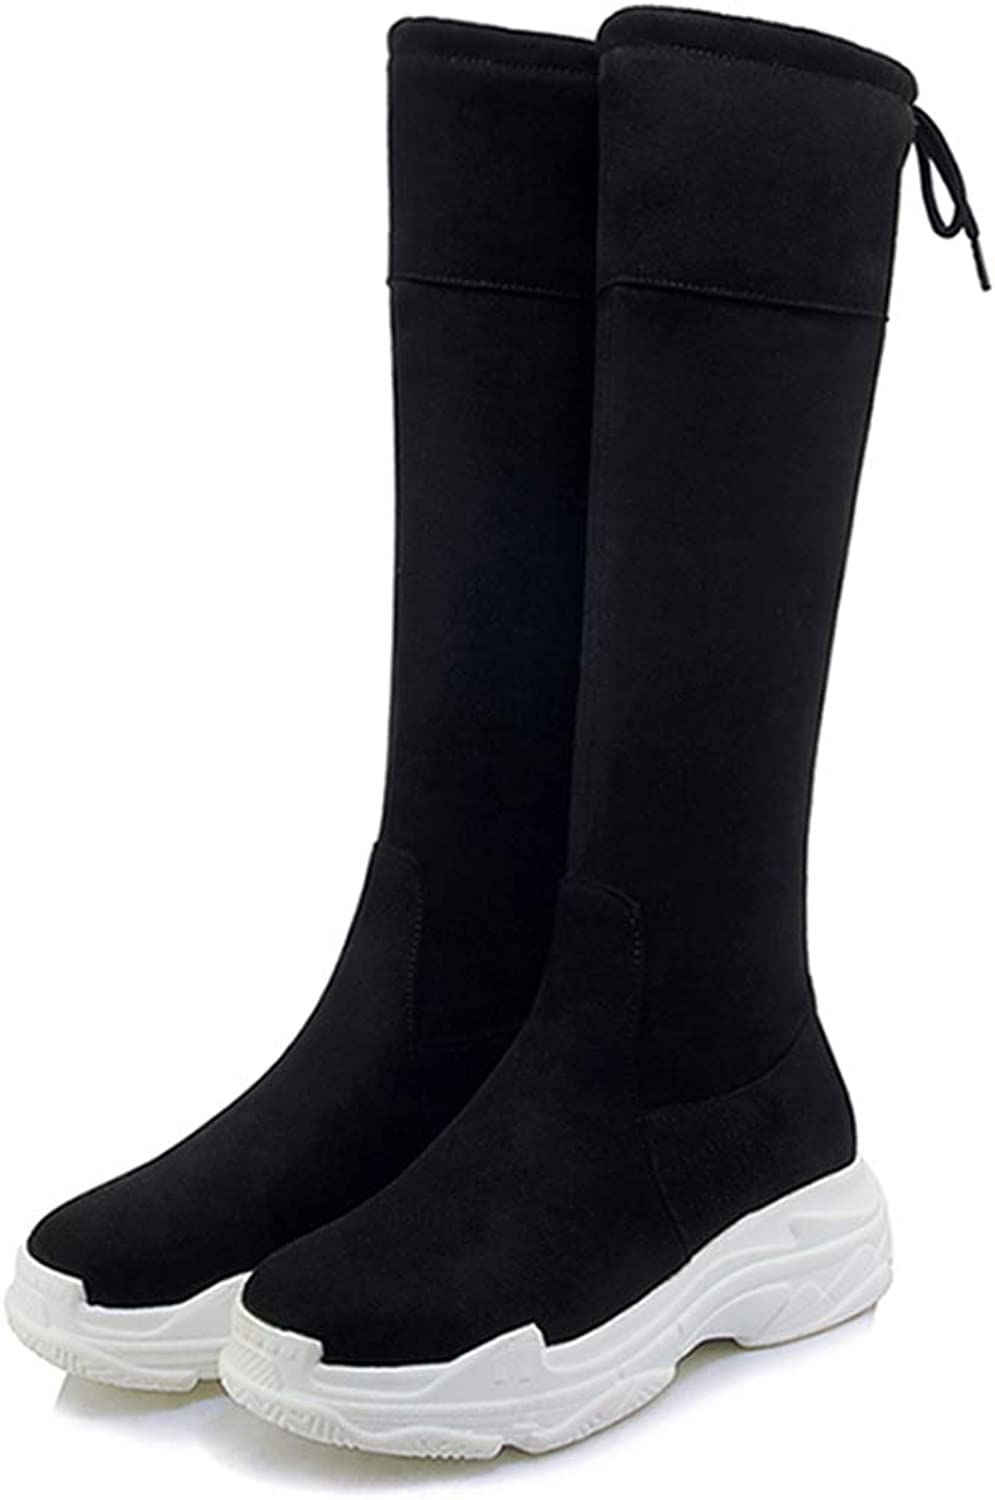 DOSOMI Women's Winter Warm Flock Over The Knee Round Toe Cross Tied Thigh High Flat Stretch Boots